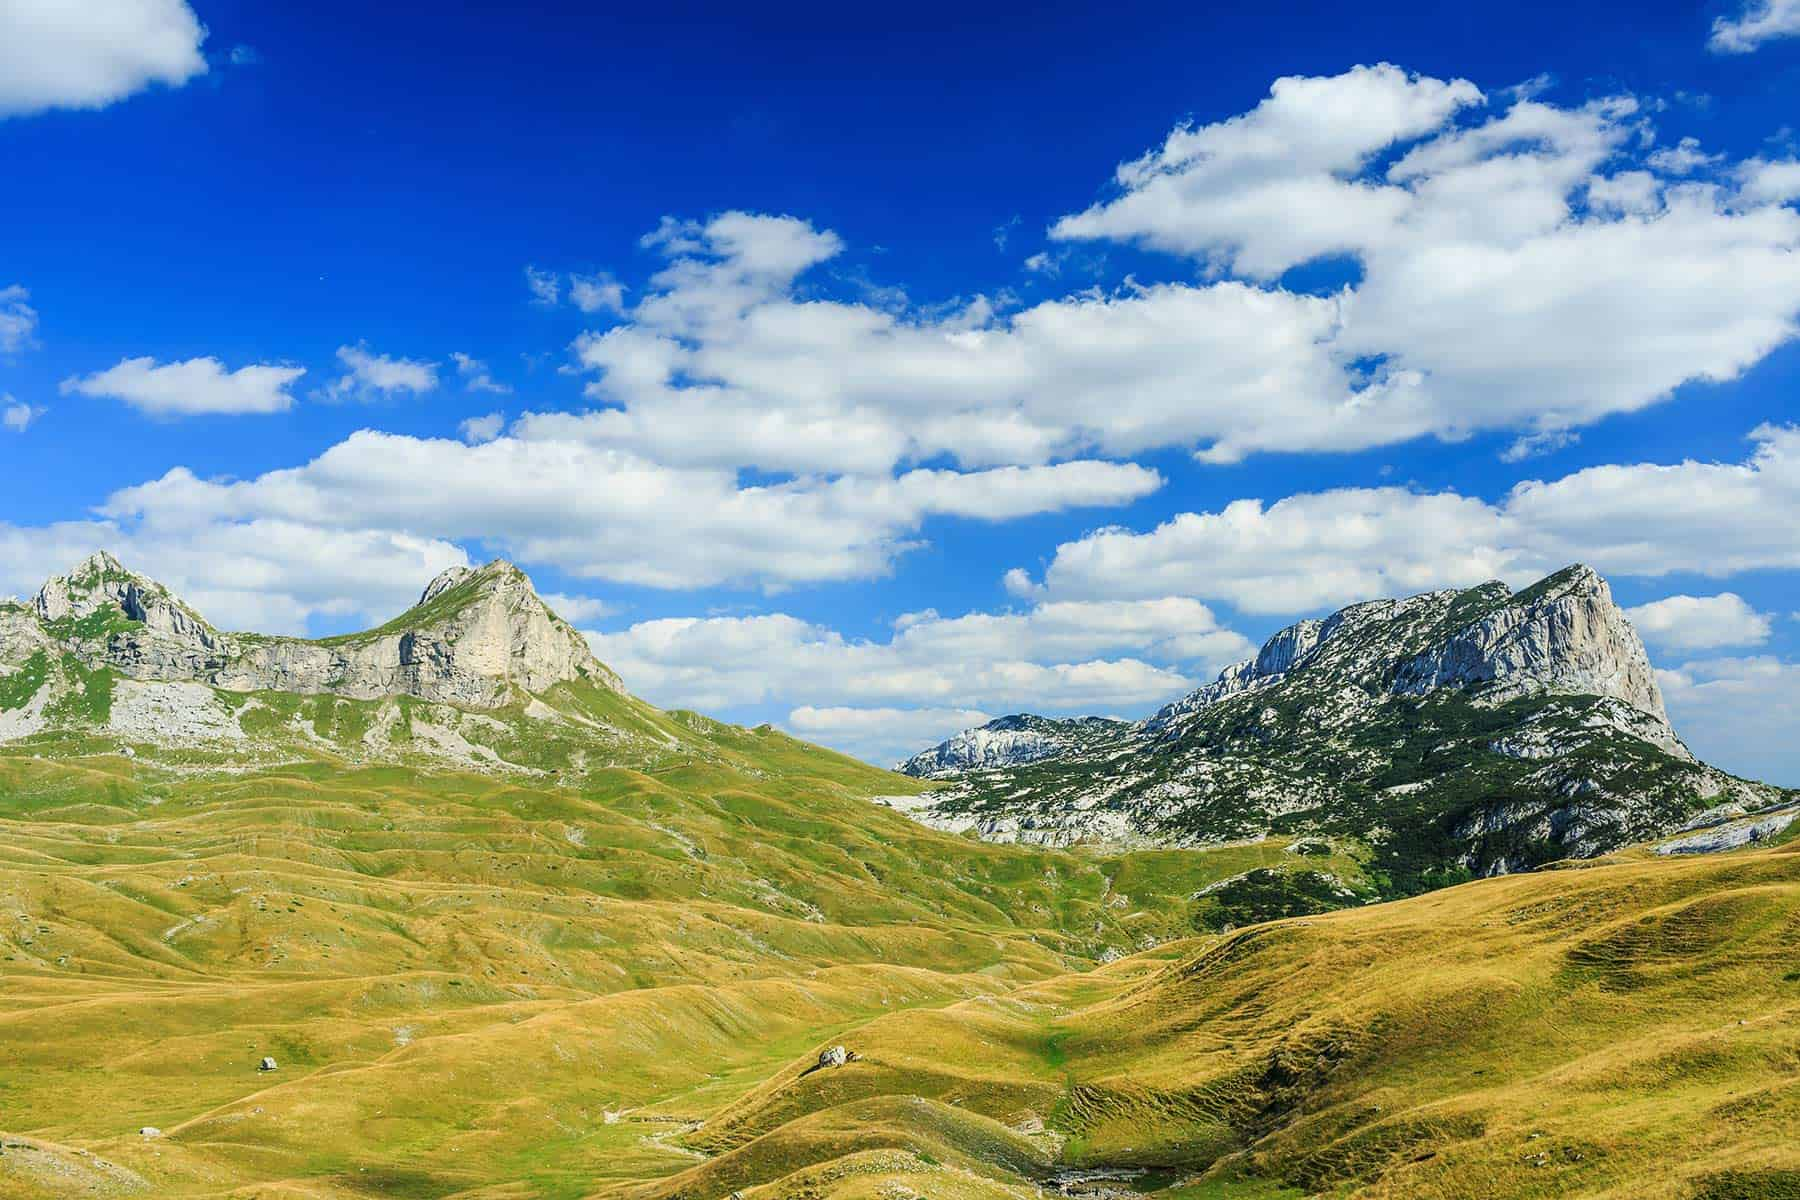 Mountains in the national park Durmitor